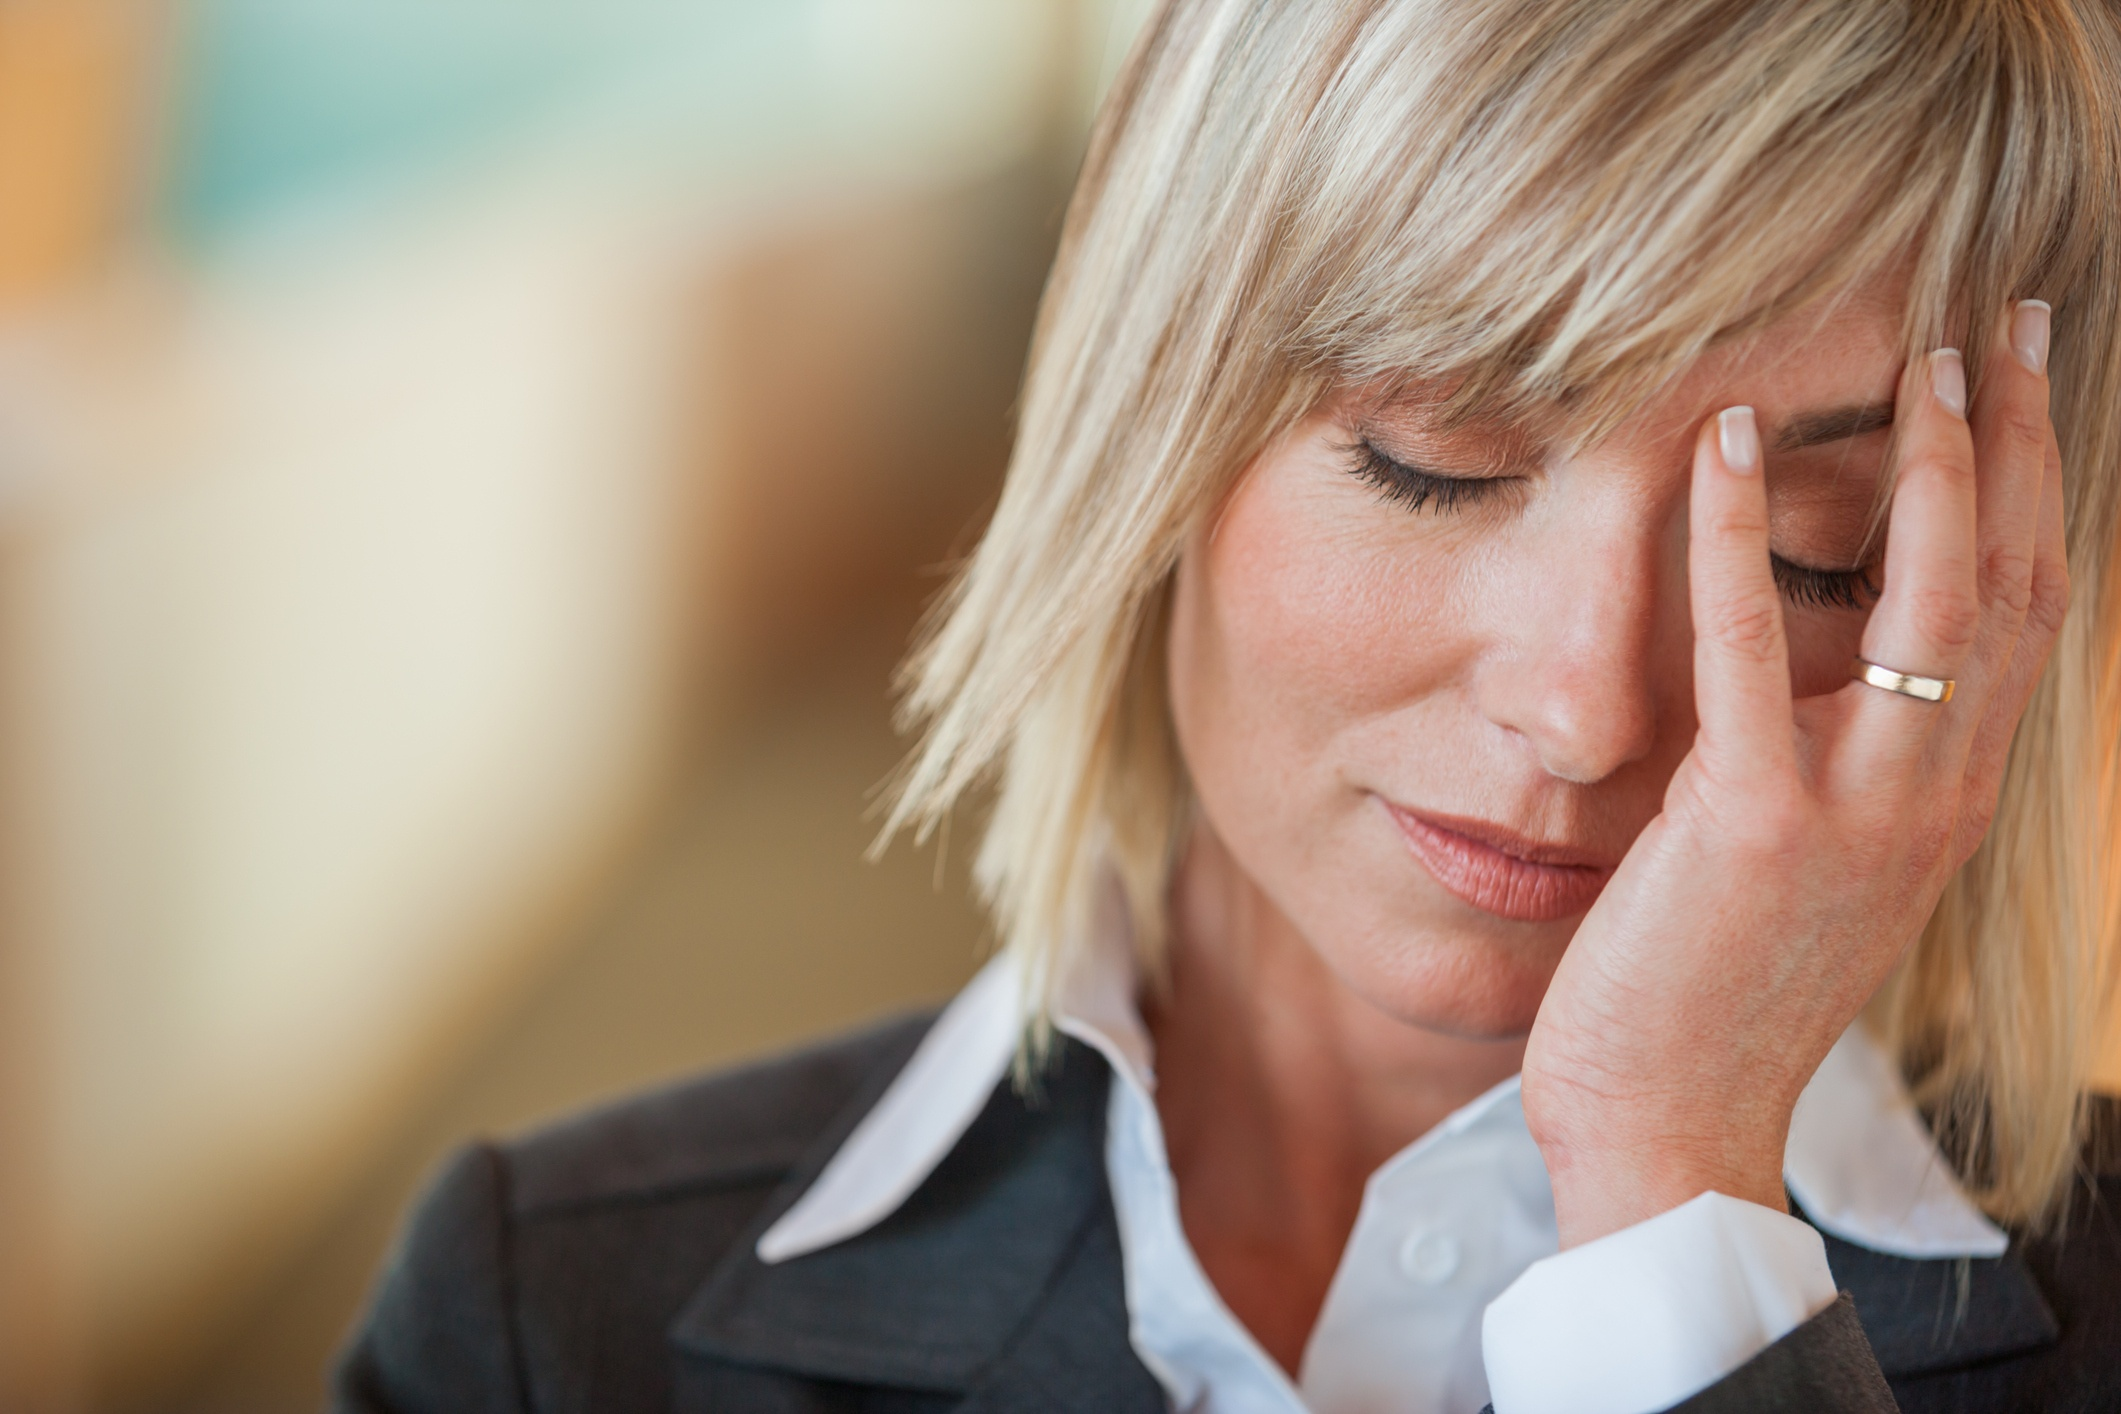 Woman sorting through conflicted feelings to find inner peace